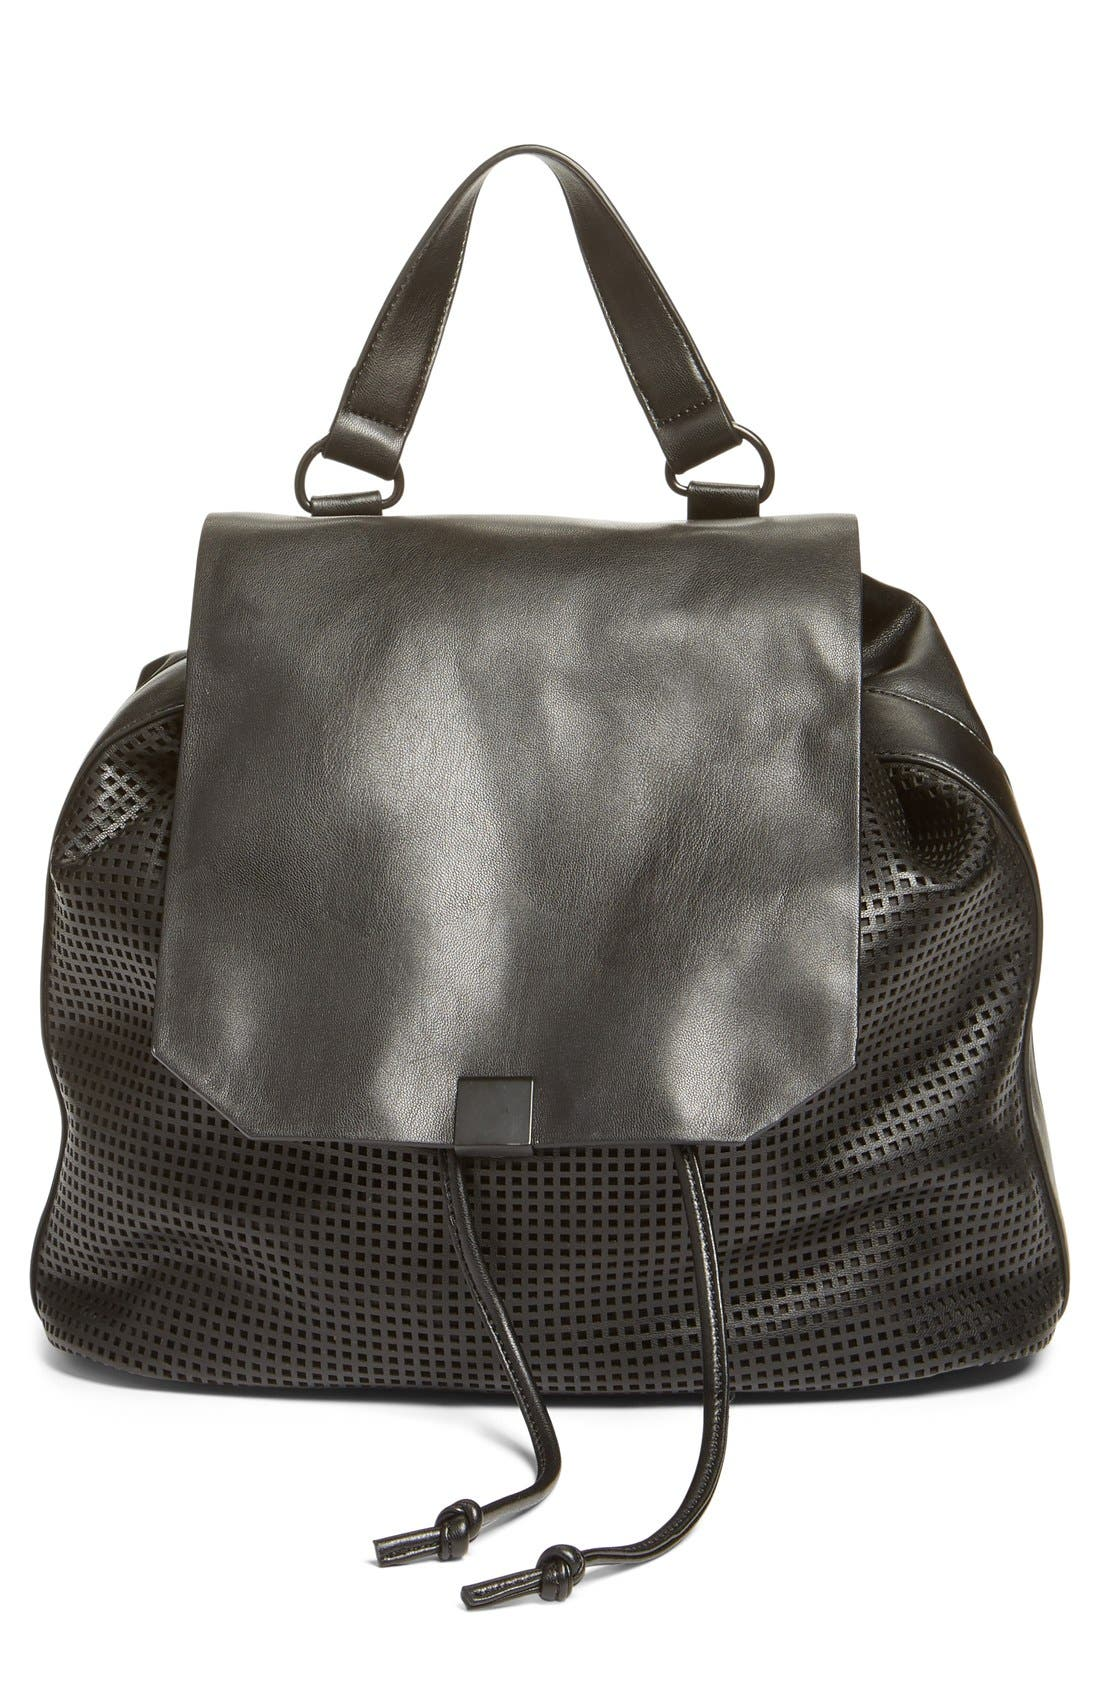 Phase 3 Perforated Faux Leather Backpack